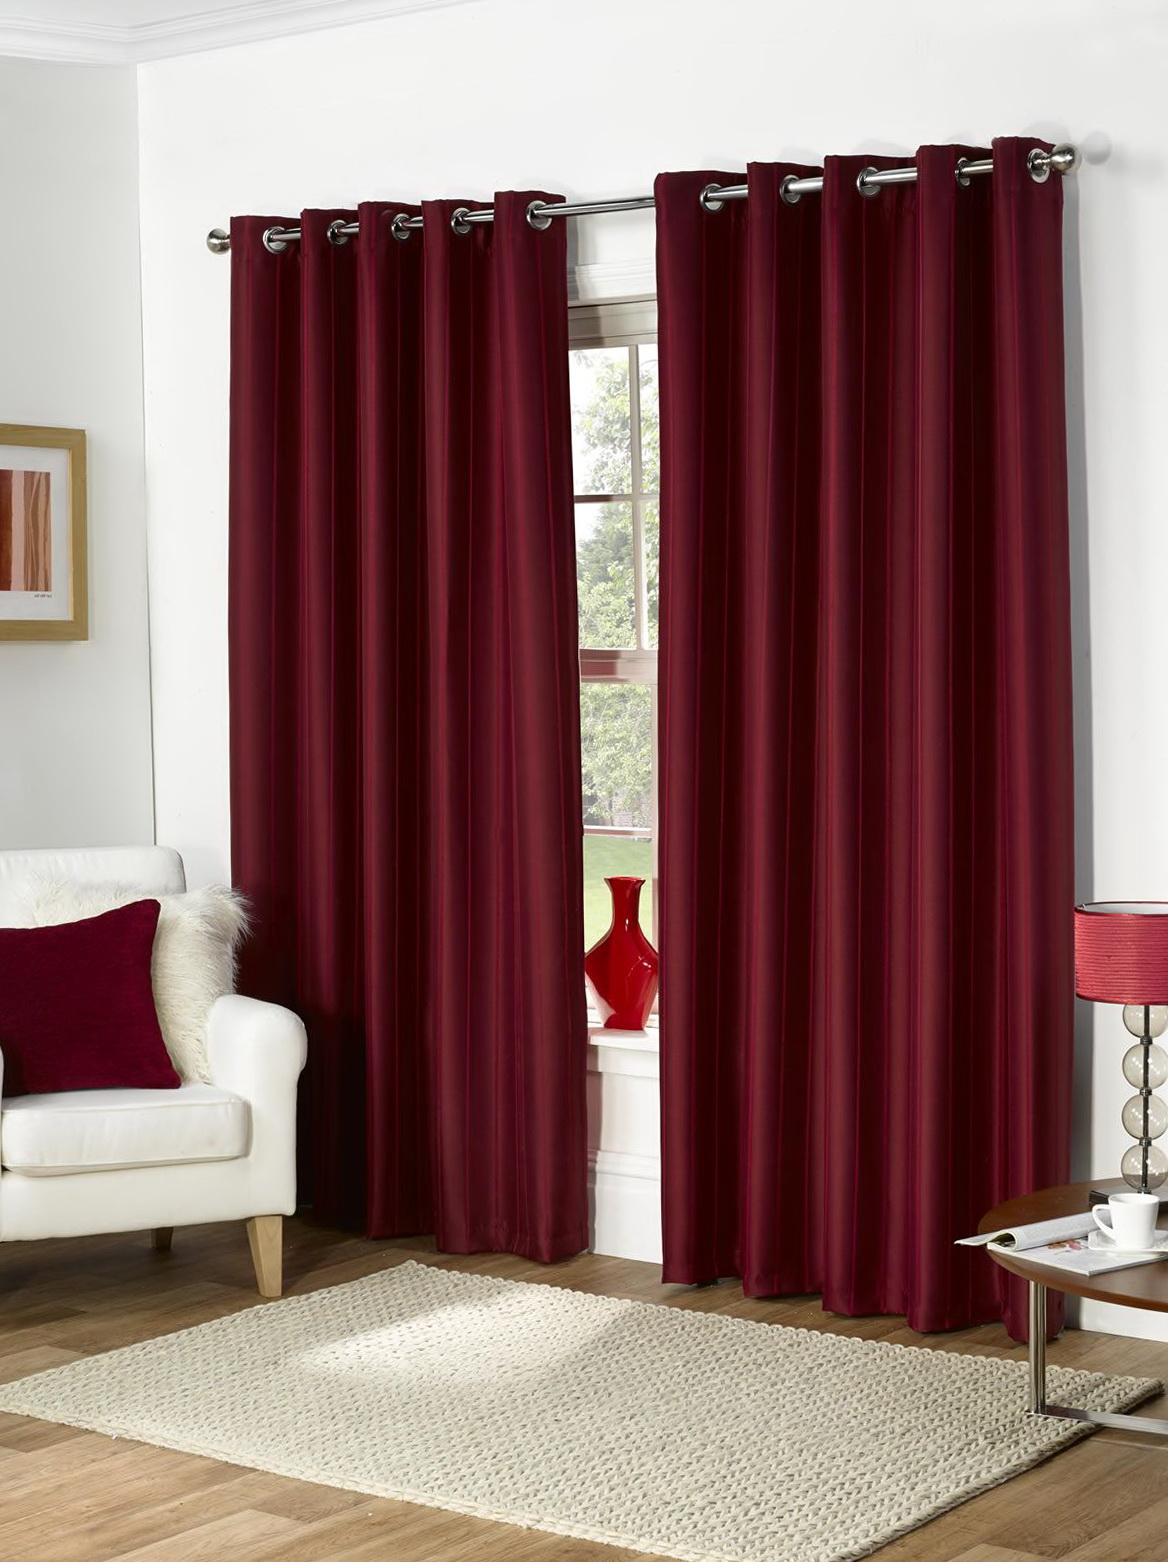 Ring Top Curtains 90 215 90 Home Design Ideas